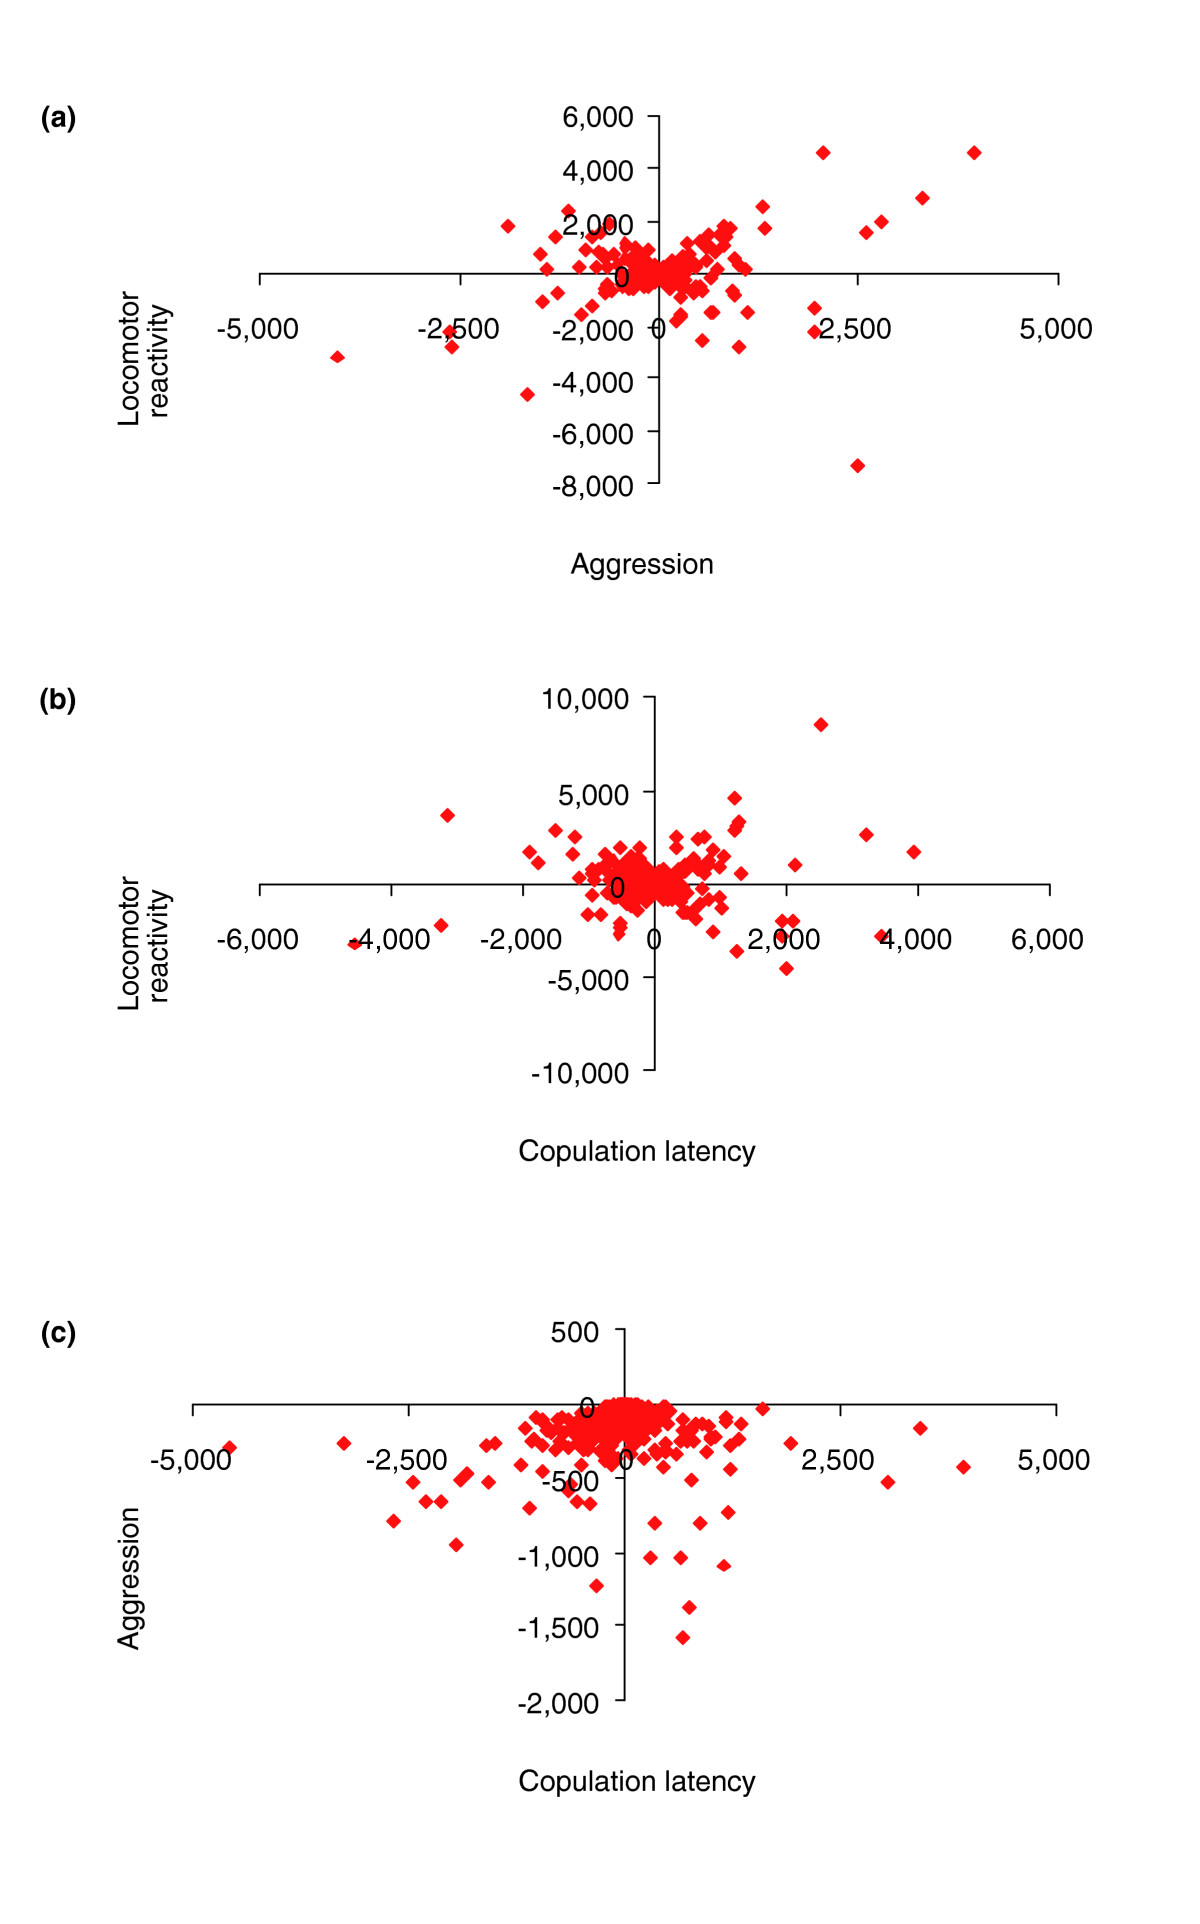 https://static-content.springer.com/image/art%3A10.1186%2Fgb-2007-8-8-r172/MediaObjects/13059_2006_Article_1653_Fig7_HTML.jpg